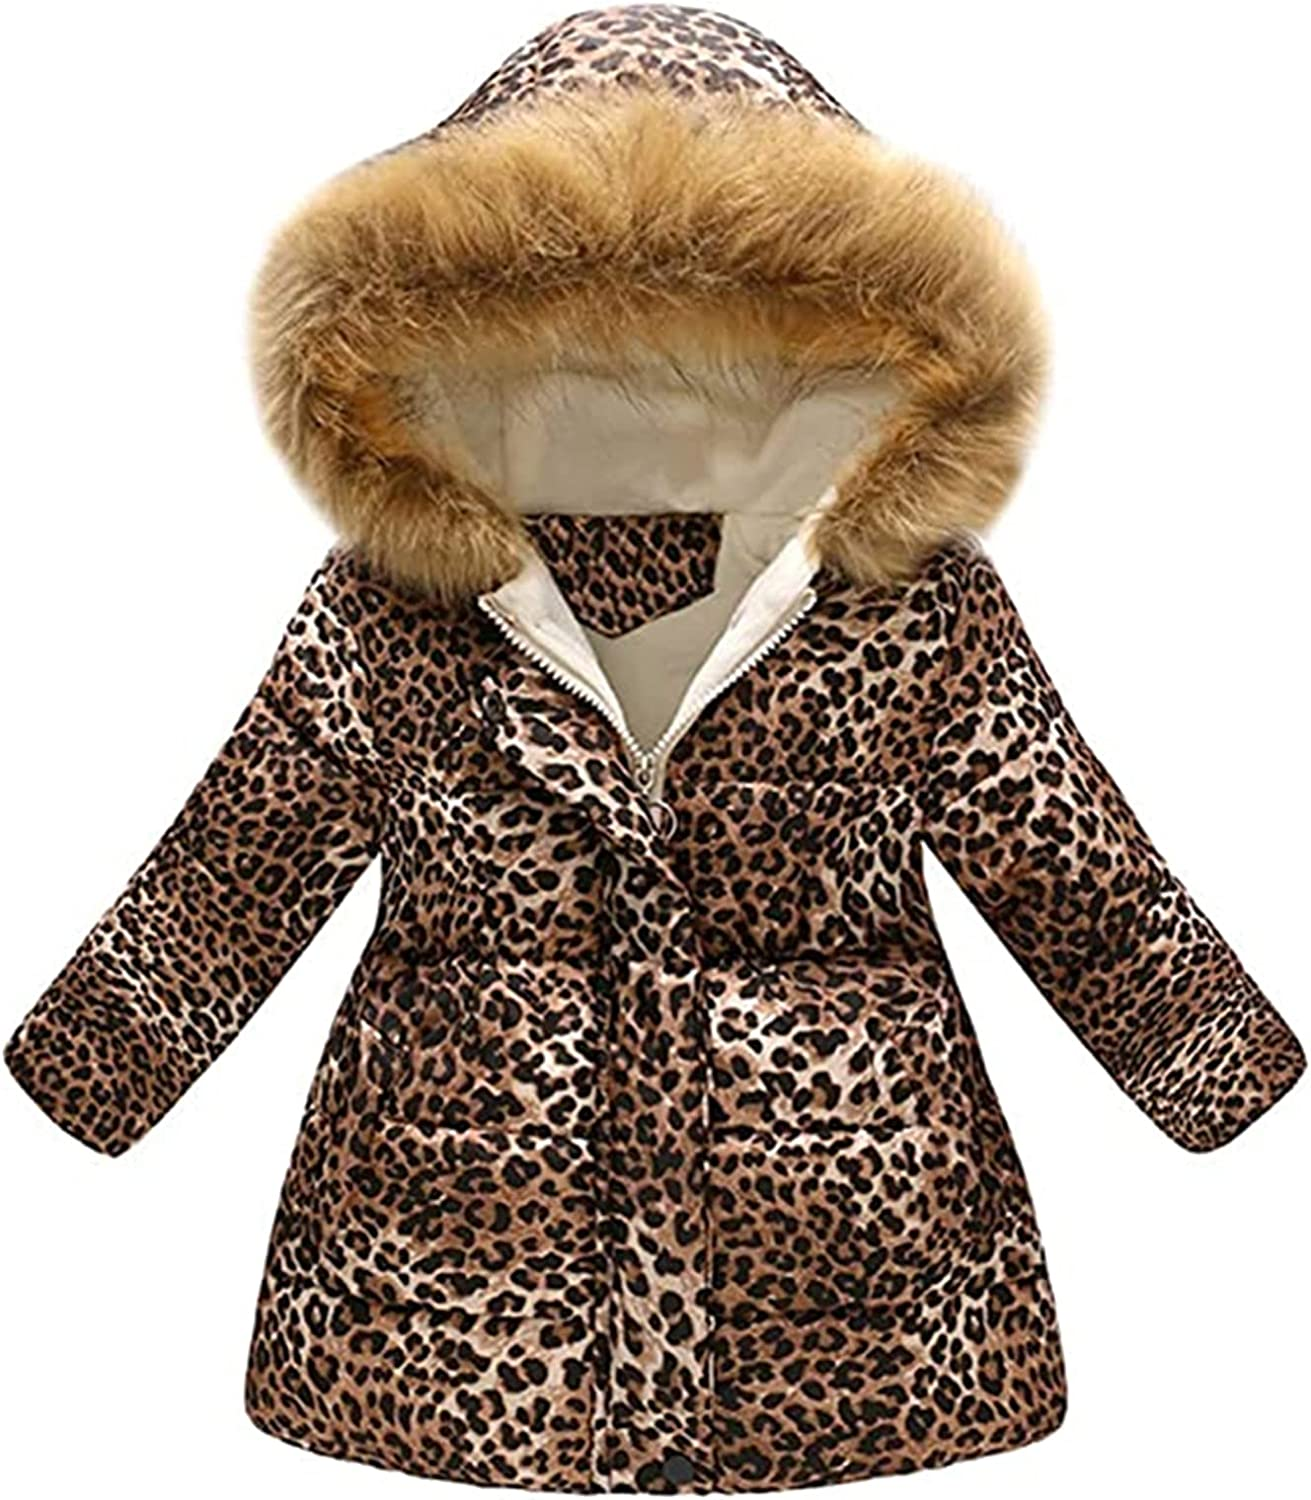 QINYI Today's only Toddler Baby Girl Boy Hooded Opening large release sale Windproof Warm Floral Jacket